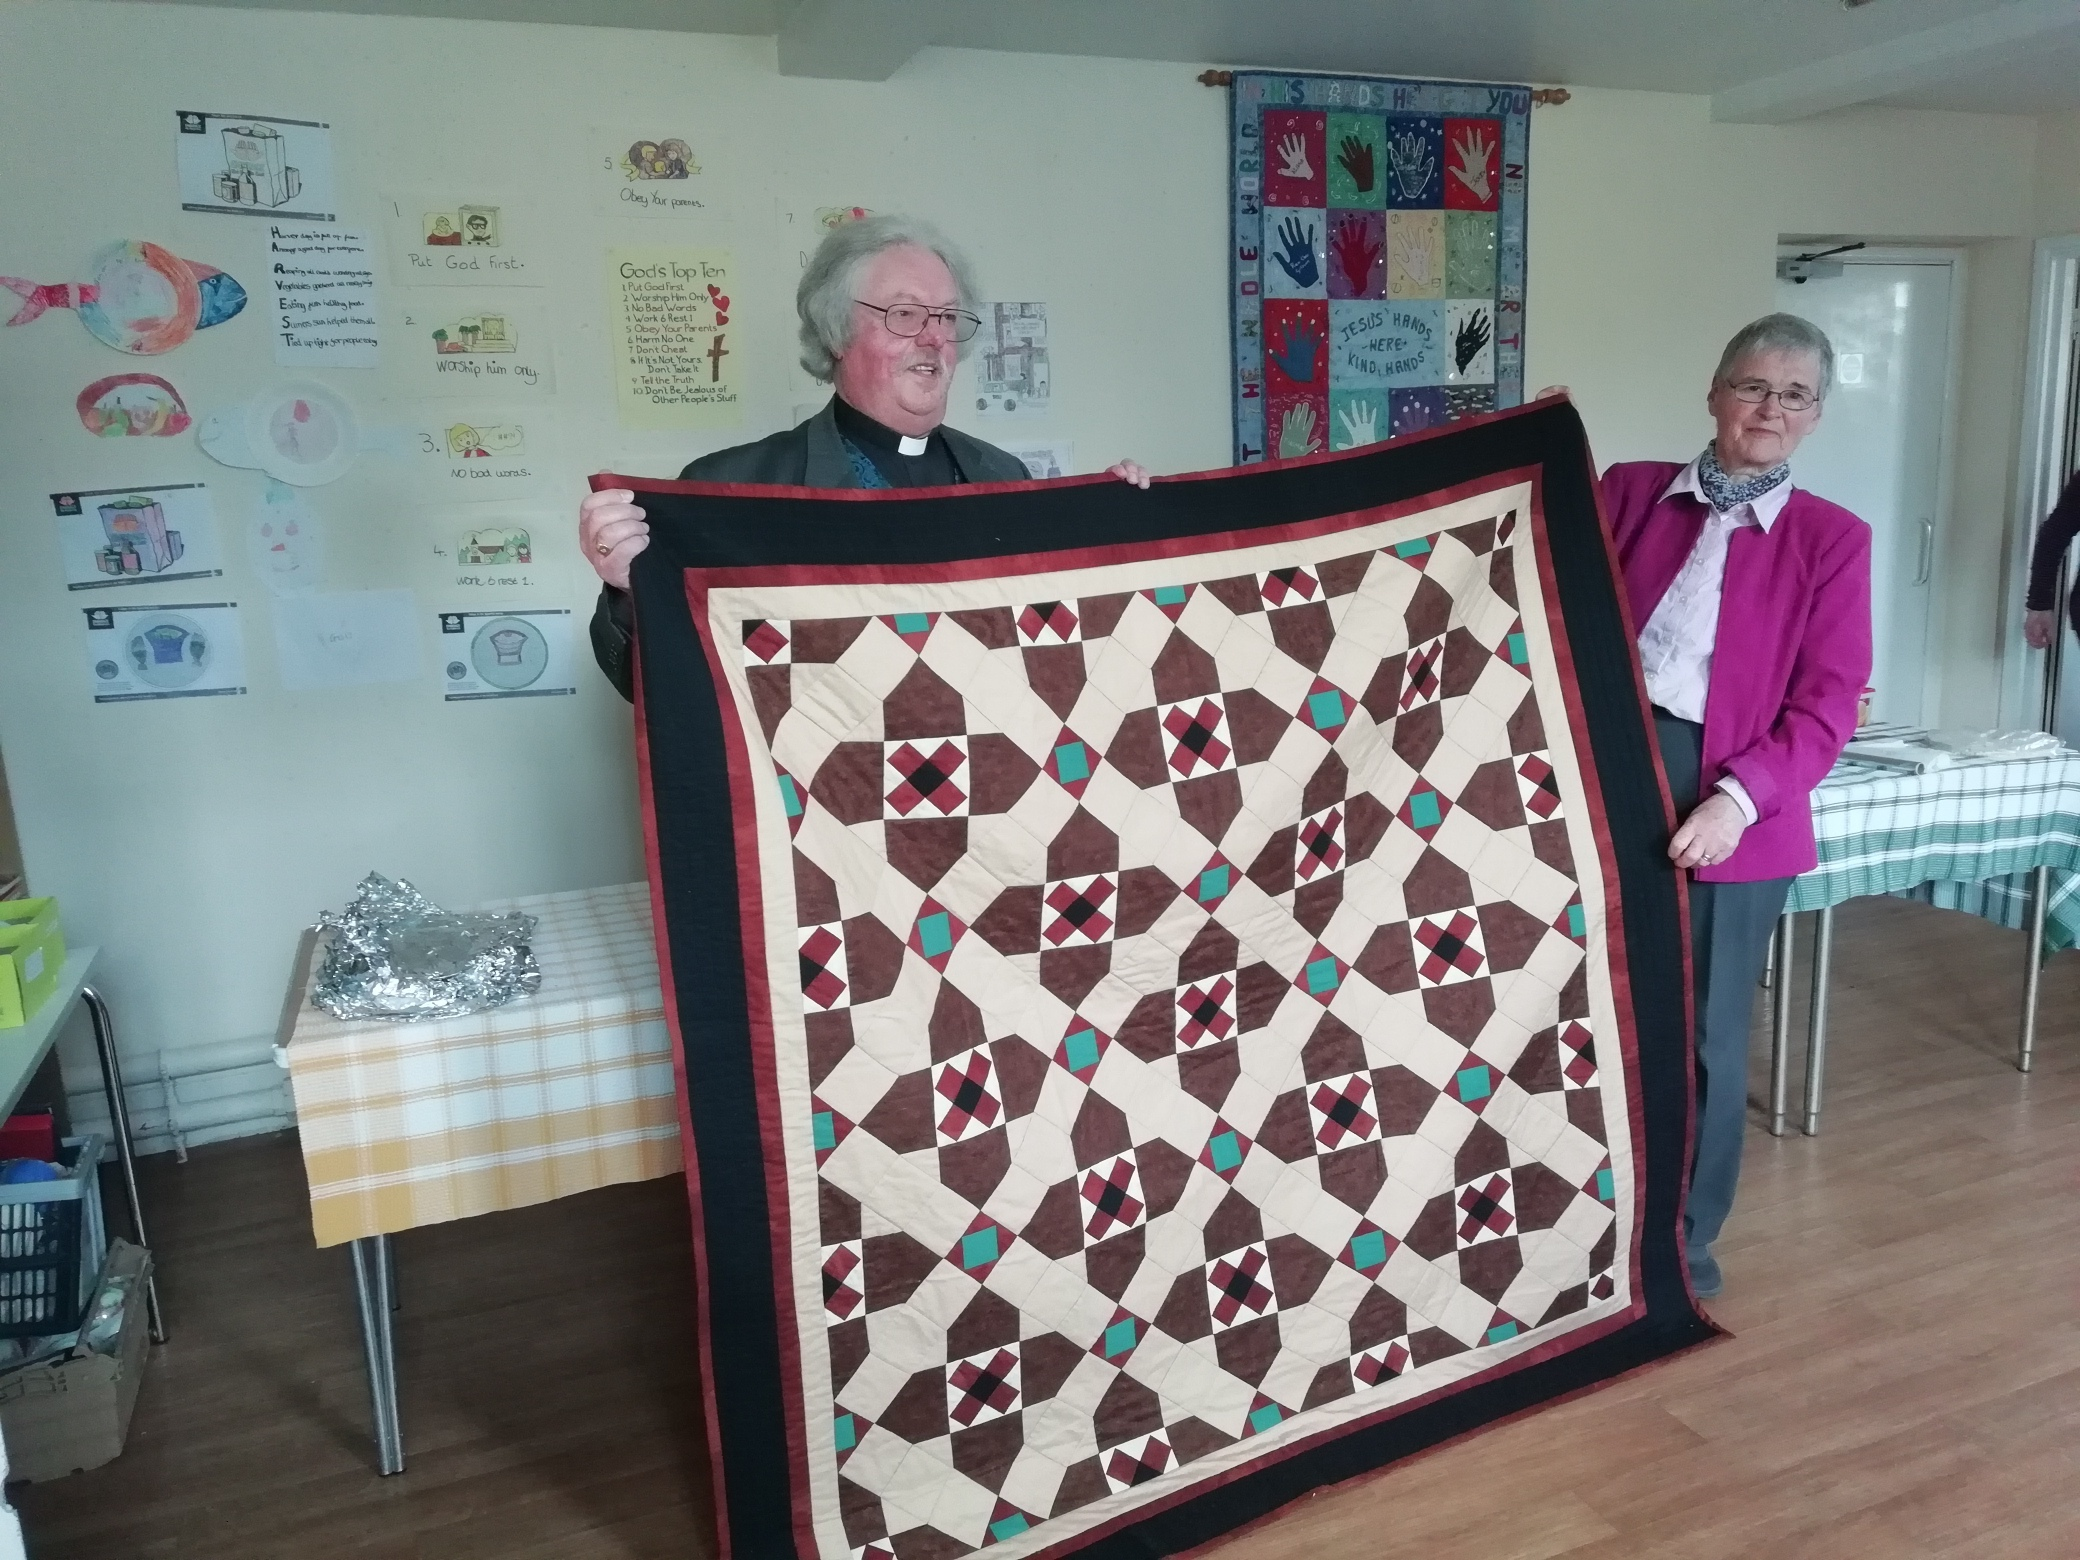 Rev Chris Gillham and Tabernacle Church Secretary, Pat Bannister with the patchwork quilt in the pattern of Tabernacle's foyer tiles, presented on the occasion of his retirement.